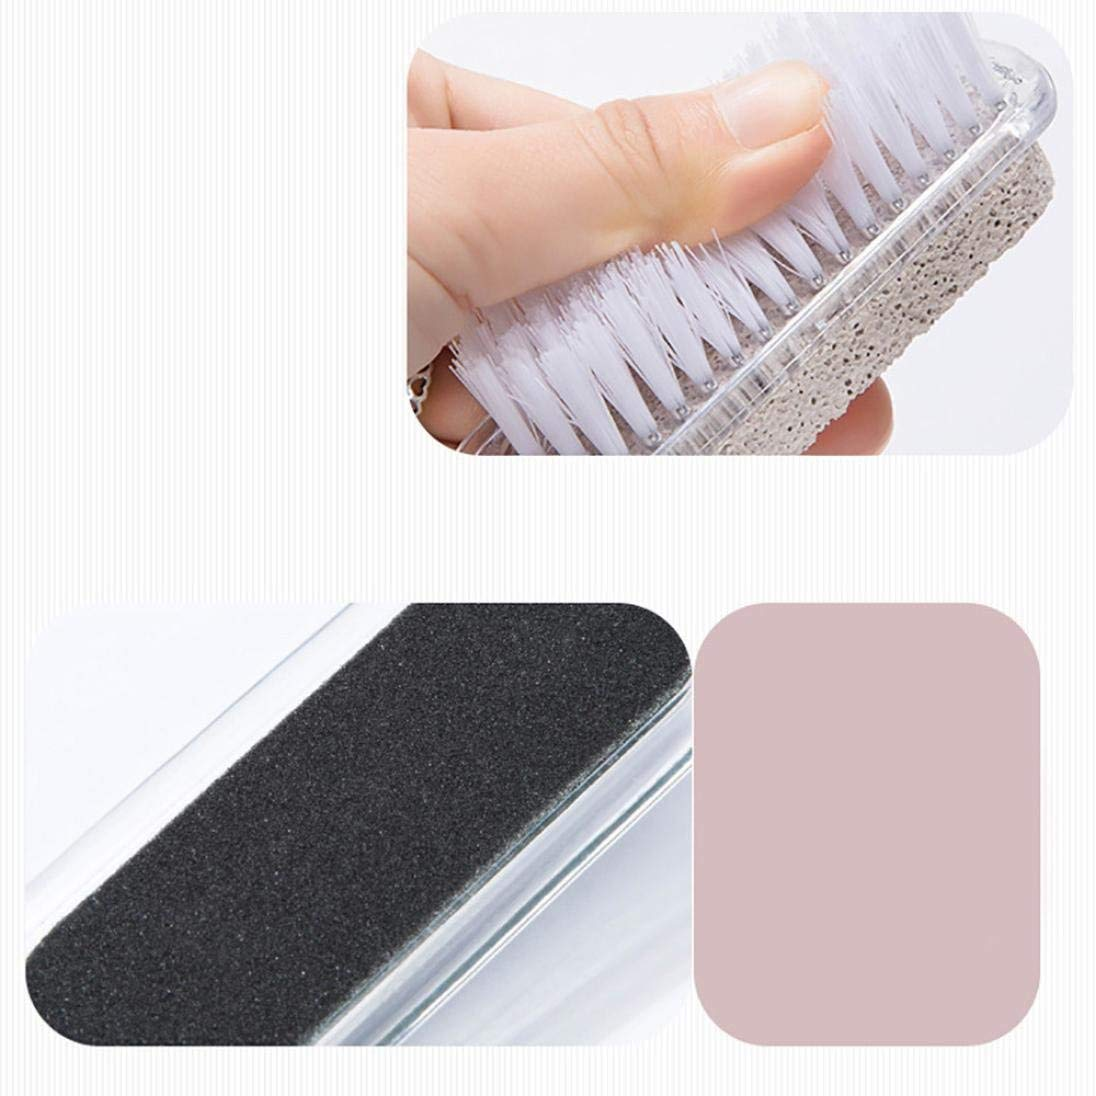 Home Foot Pumice Stone 4 in 1 Stone Dead Skin Remover Brush Pedicure Grinding Fad Double Head Cleaning Brush